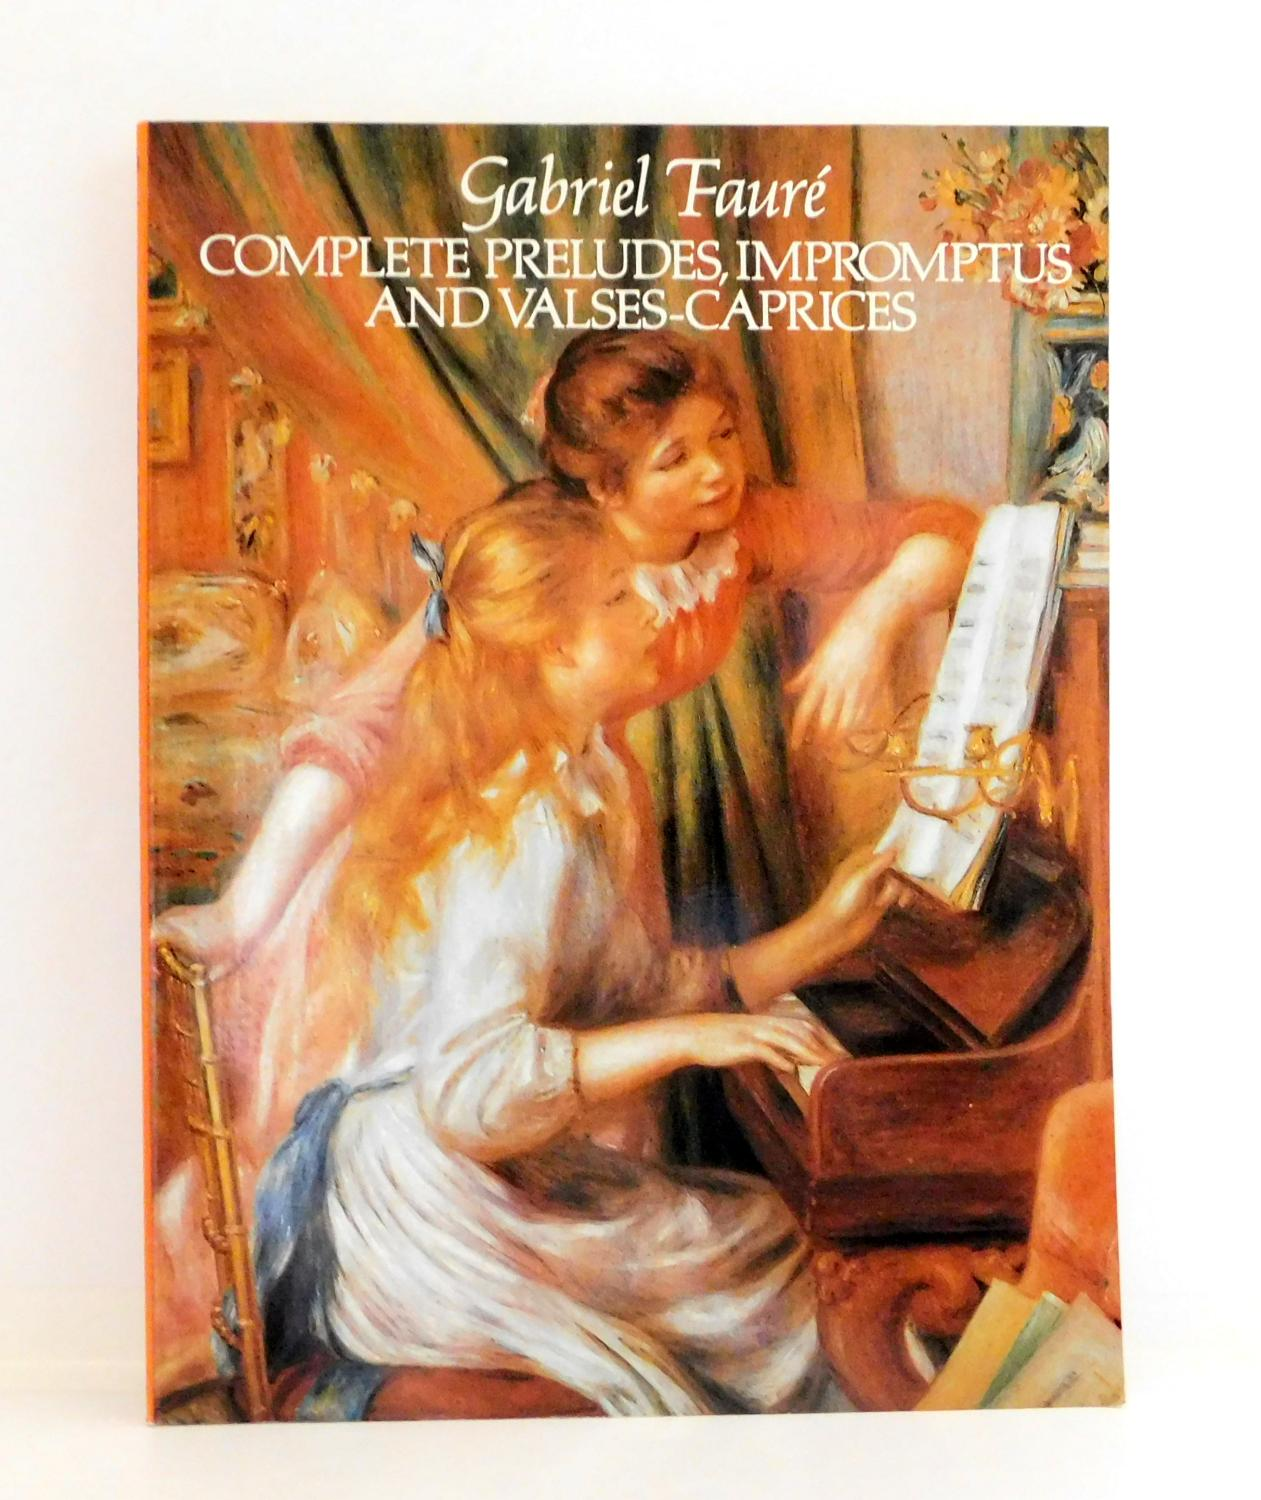 Complete Preludes, Impromptus and Valses-Caprices (Dover Music for Piano)